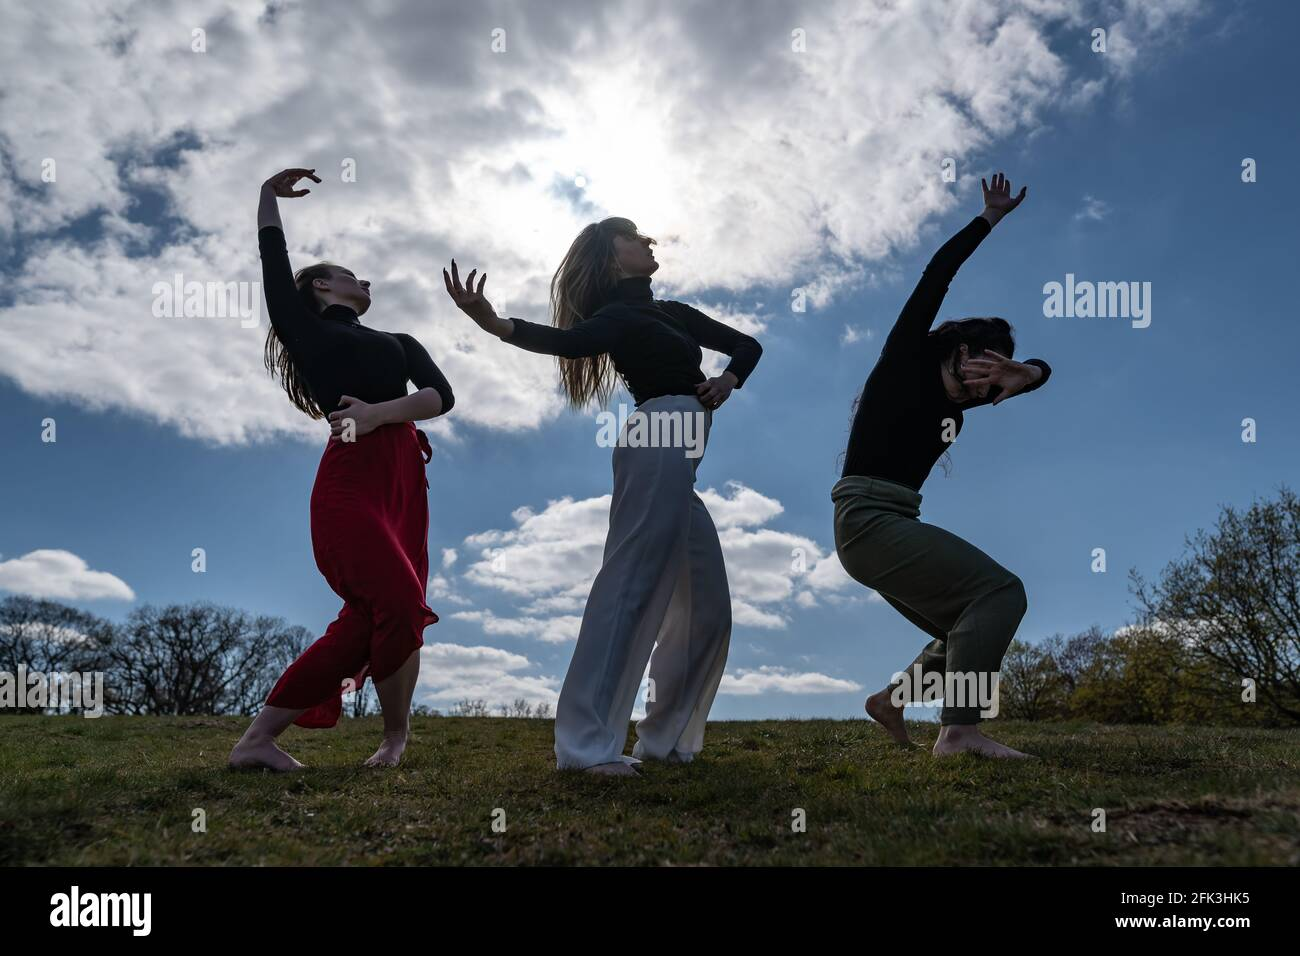 London, UK. 28th April 2021. International Dance Day: Dancers from Ranbu Collective perform on Hampstead Heath ahead of International Dance Day on 29th April (L-R Belinda Roy, Sophie Chinner, Coralie Calfond). The newly formed dance collective based in London and Japan aims create a platform for contemporary dancers to collaborate, perform and share ideas with other artists. First celebrated in 1982, International Dance Day has taken place every year since the birth of Jean-Georges Noverre (1727-1810), the creator of modern ballet. Credit: Guy Corbishley/Alamy Live News Stock Photo